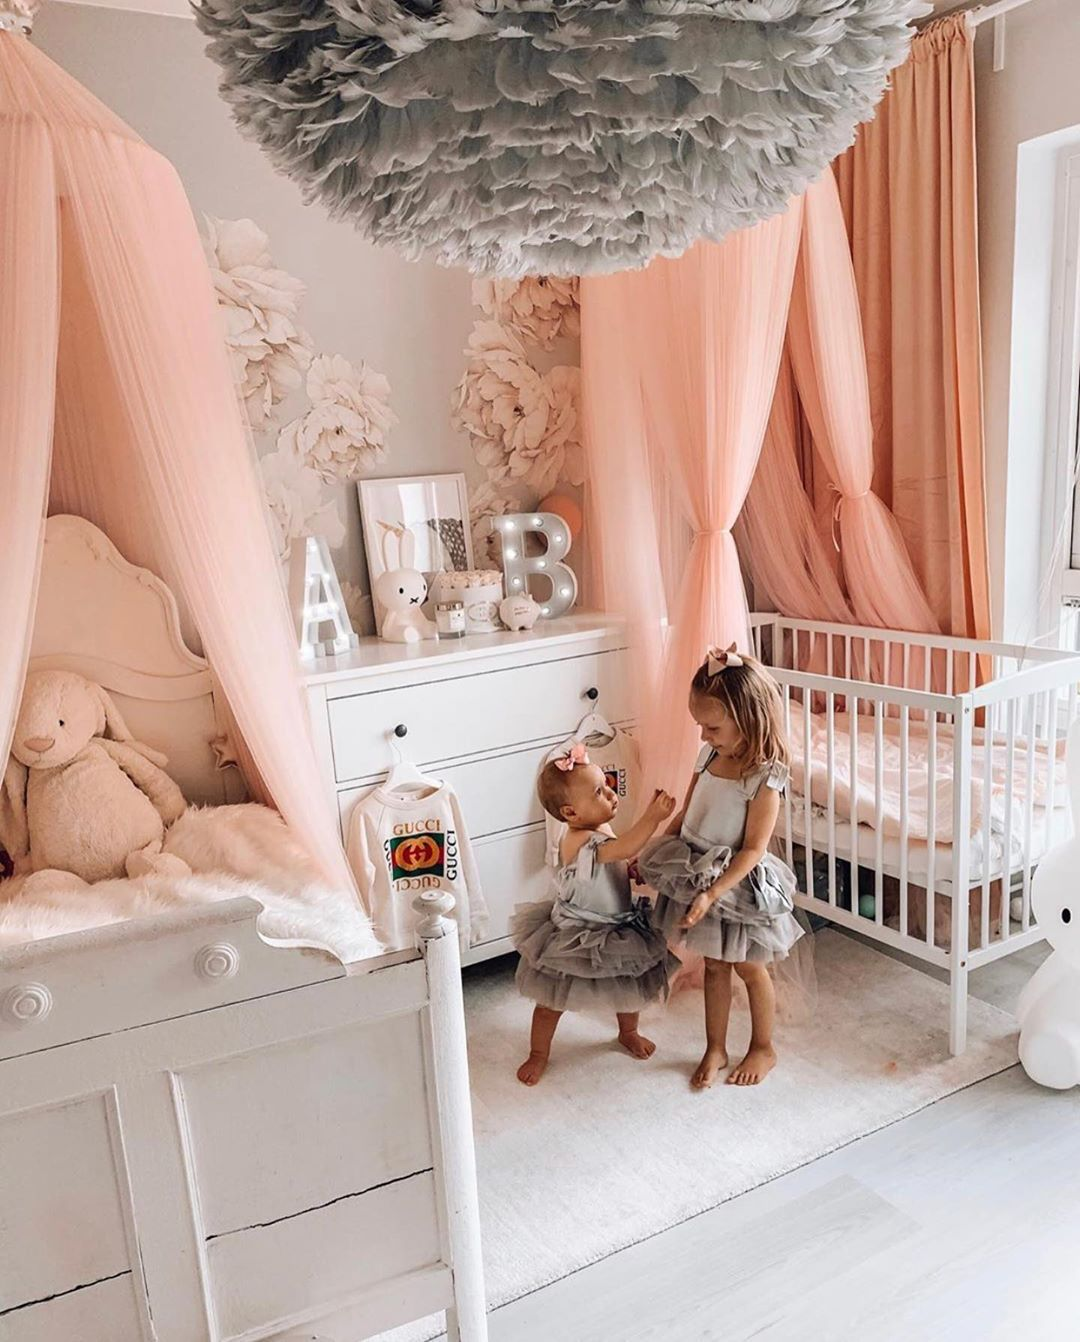 Decor Toys Baby Clothing On Instagram Absolute Room Goals Sister Goals In 2020 Princess Kids Room Shared Girls Room Toddler And Baby Room